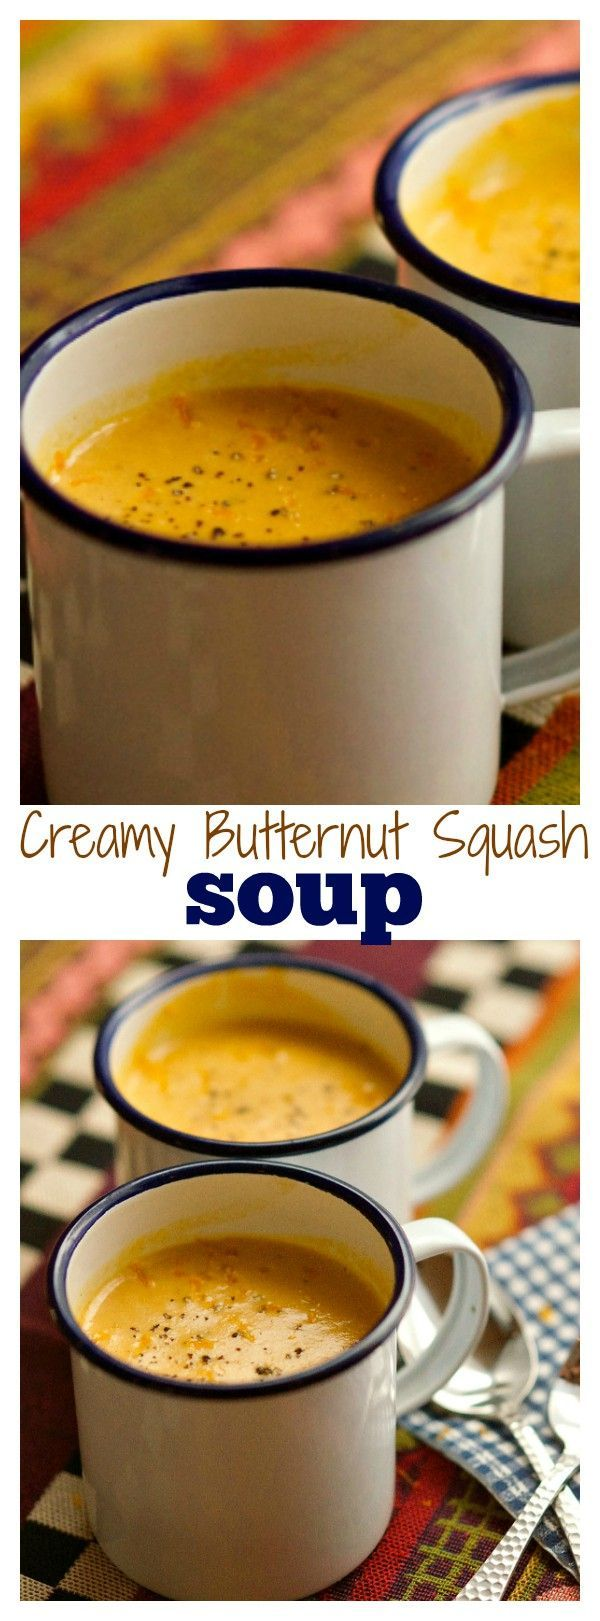 Creamy Butternut Squash Soup - serve it with hot crunchy bread and a big salad.